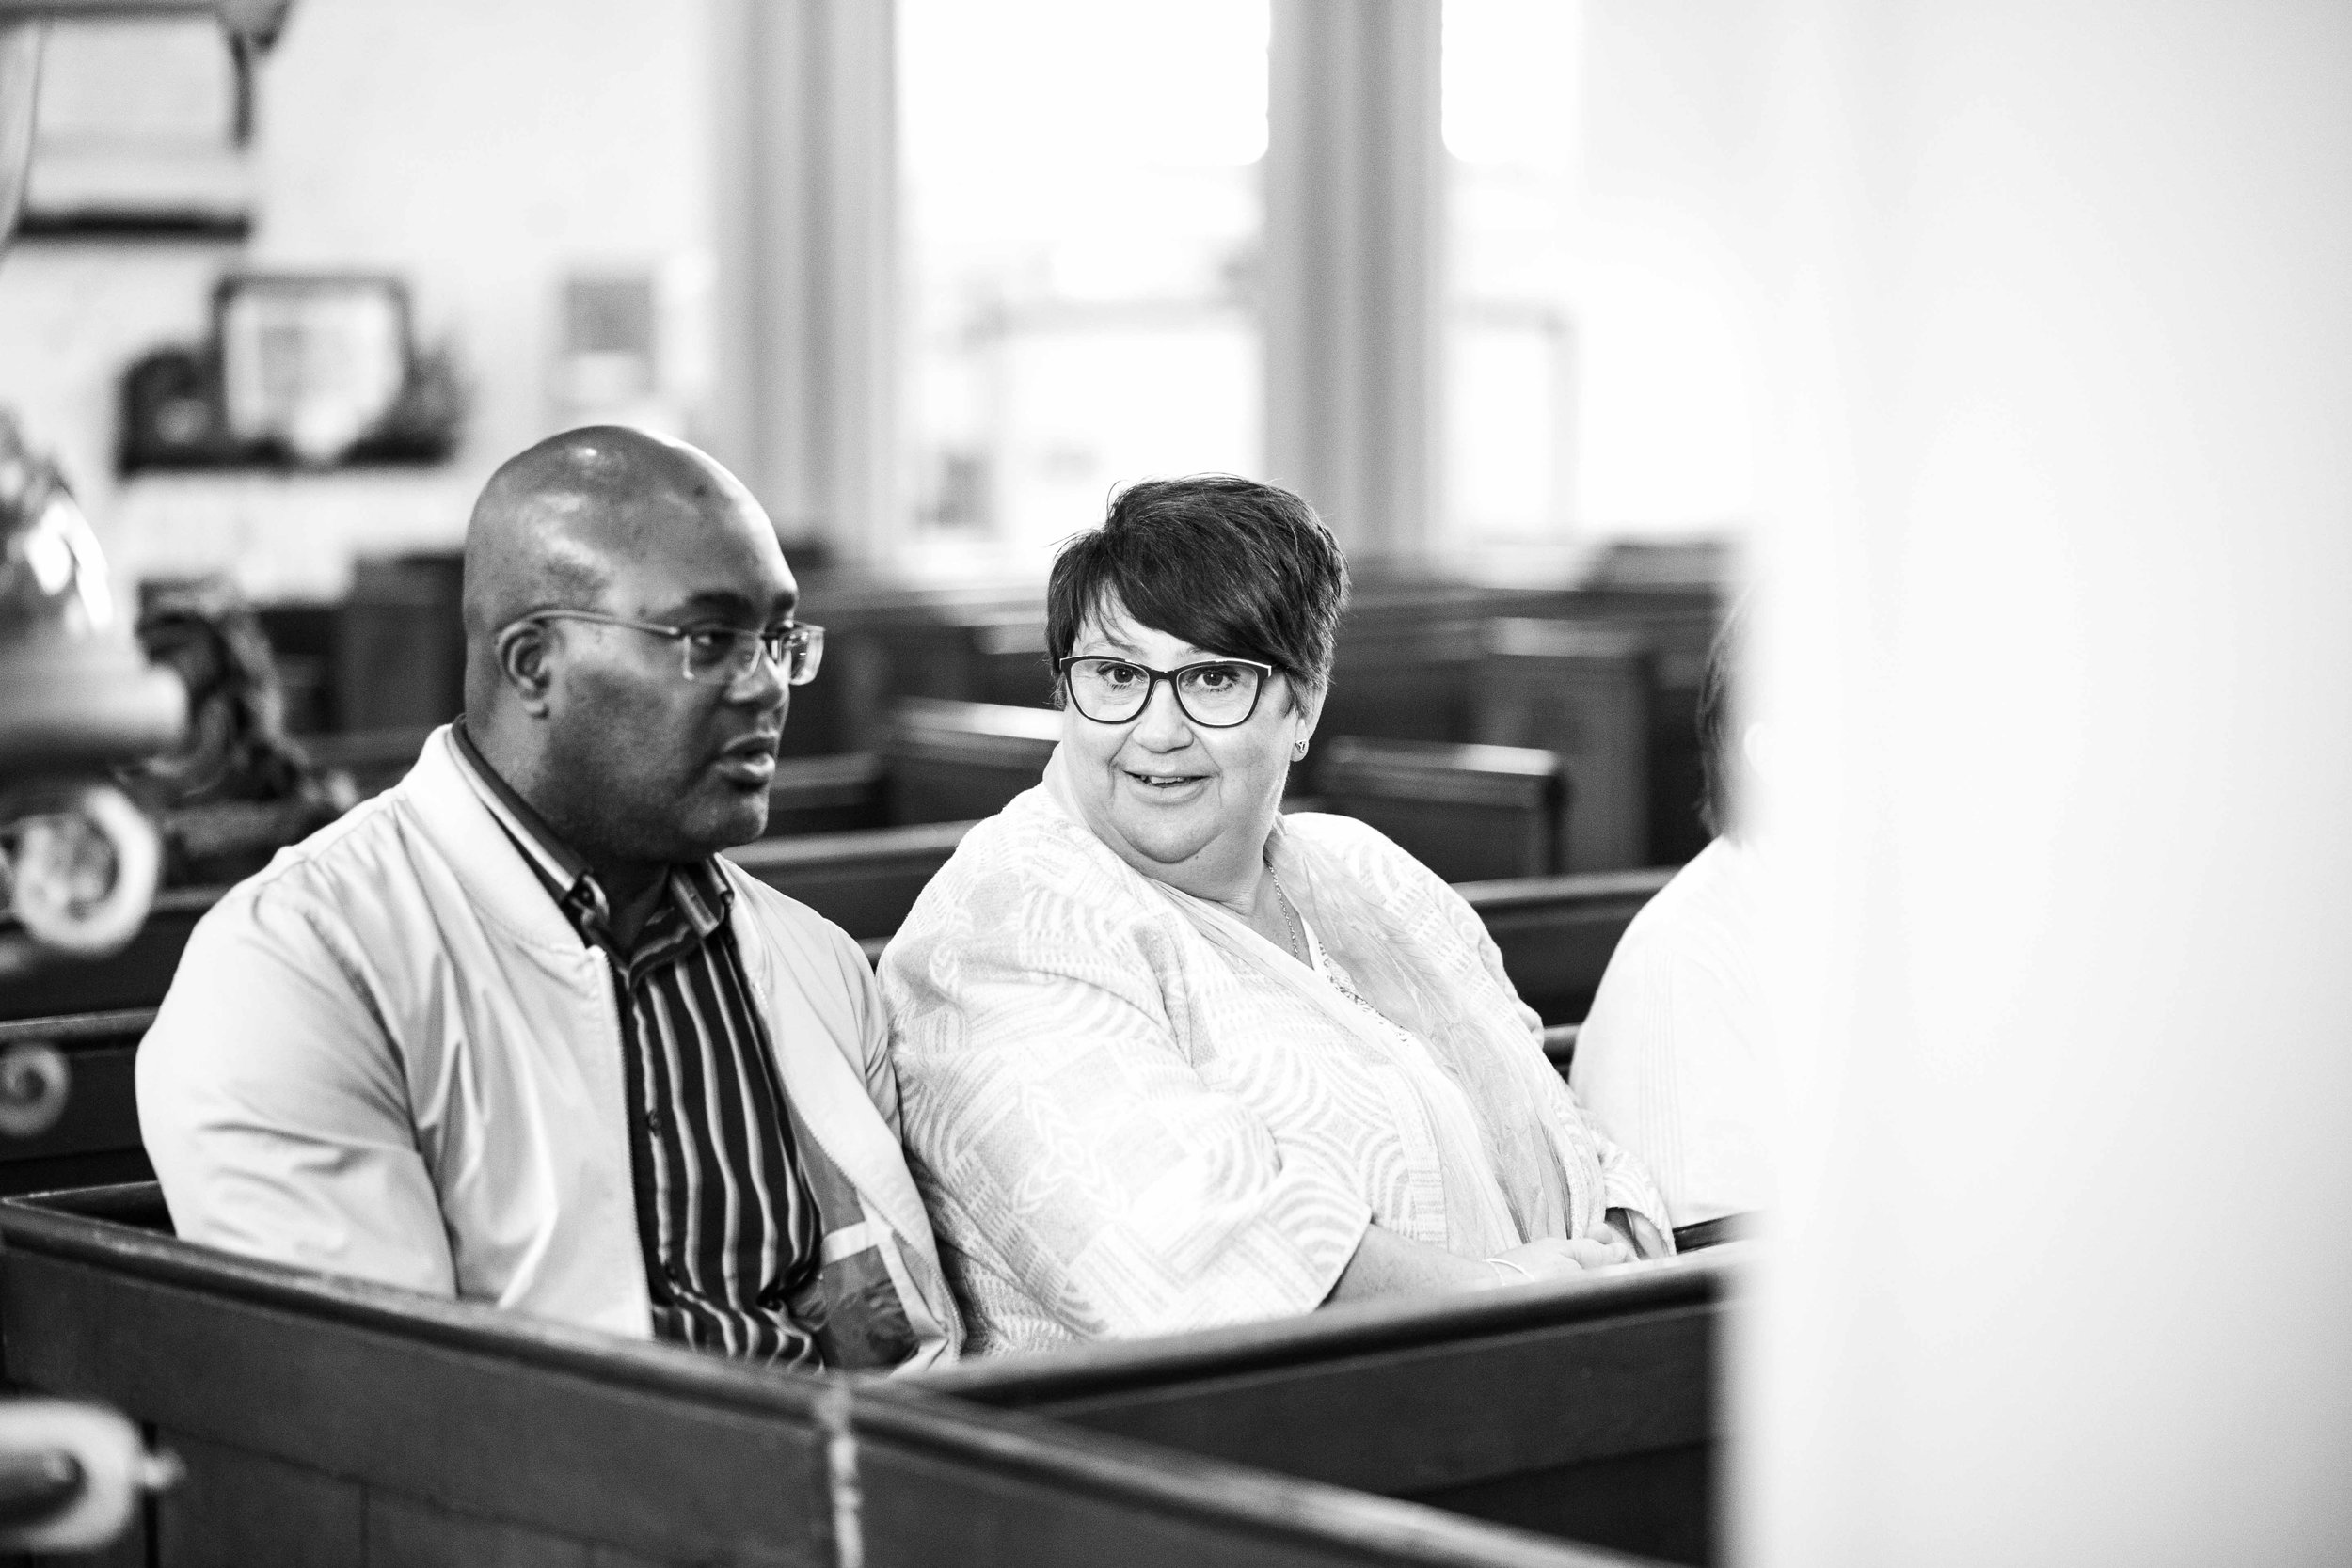 Lea-cooper-photography-christening-photographer-baptism-wolverhampton-wednesbury-walsall-willenhall-dudley-church-chapel-event-photography-3.jpg